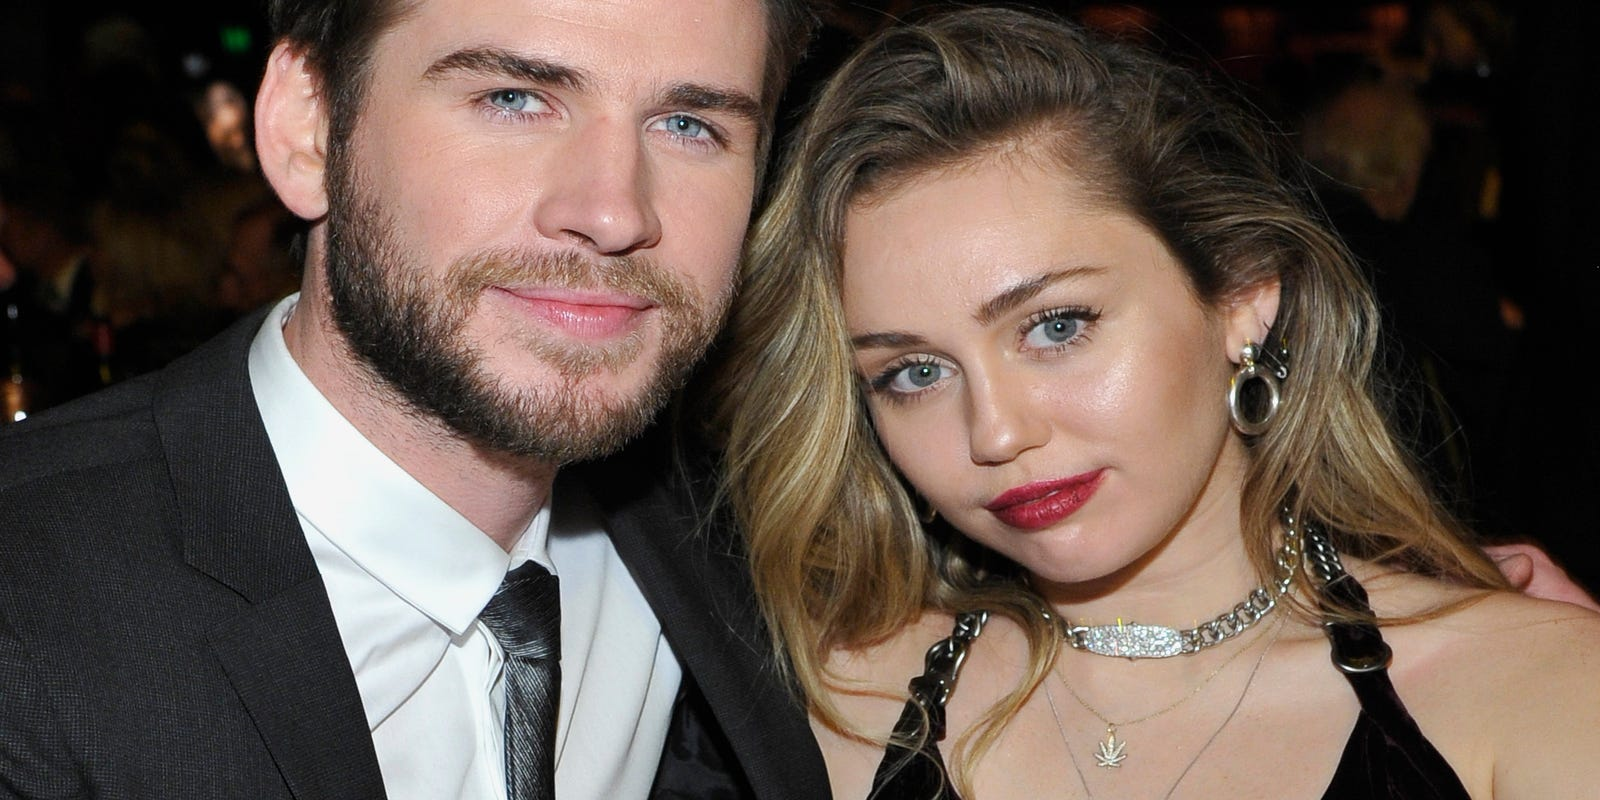 Liam Hemsworth's sister-in-law says he 'deserves much better' after Miley Cyrus split